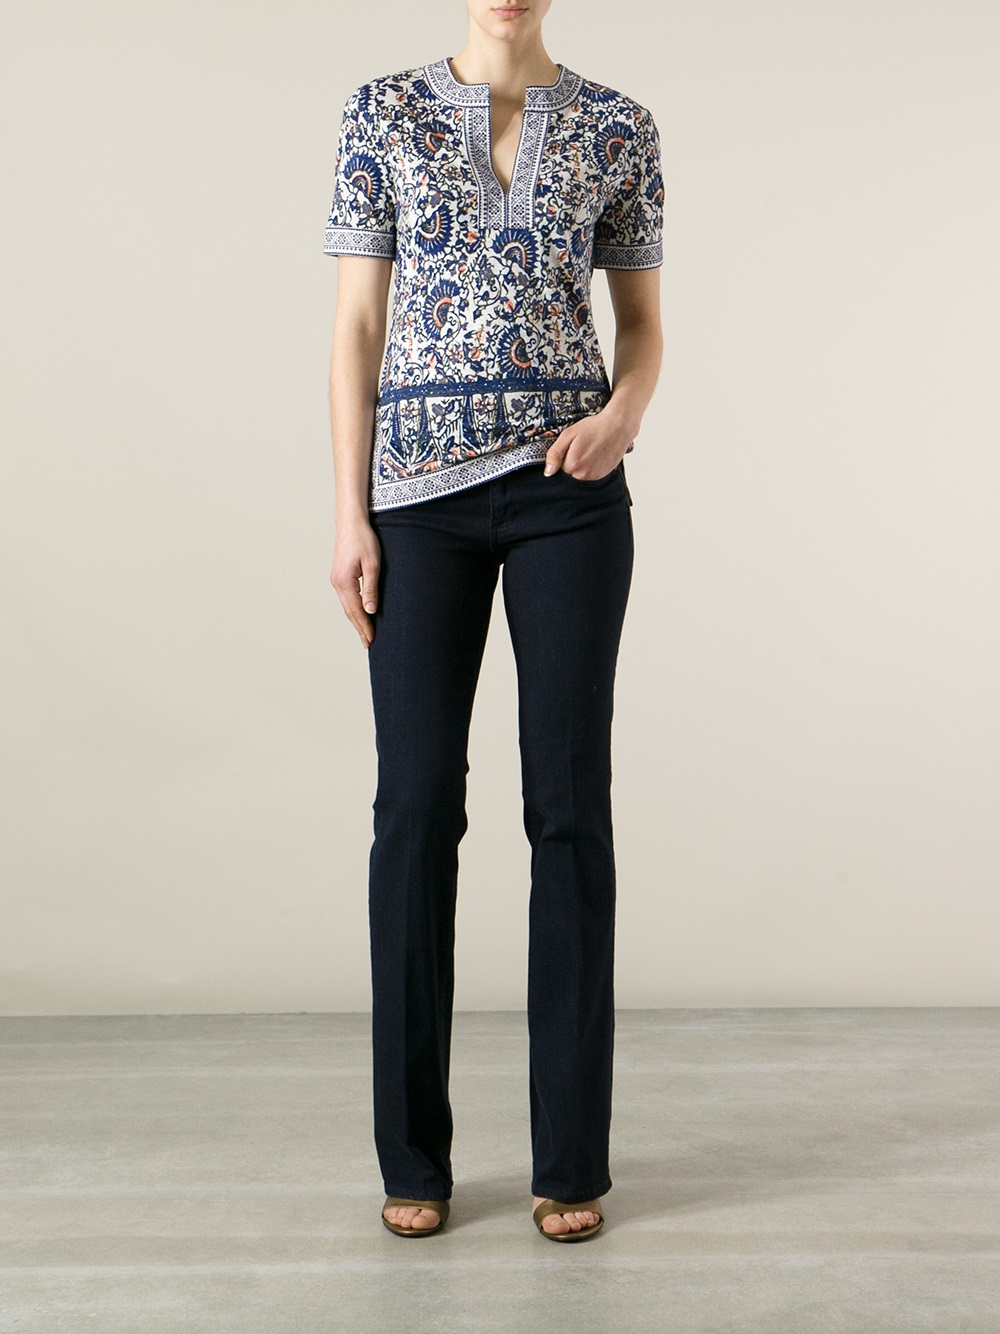 Lyst tory burch bootcut jean in blue for Tory burch fashion island